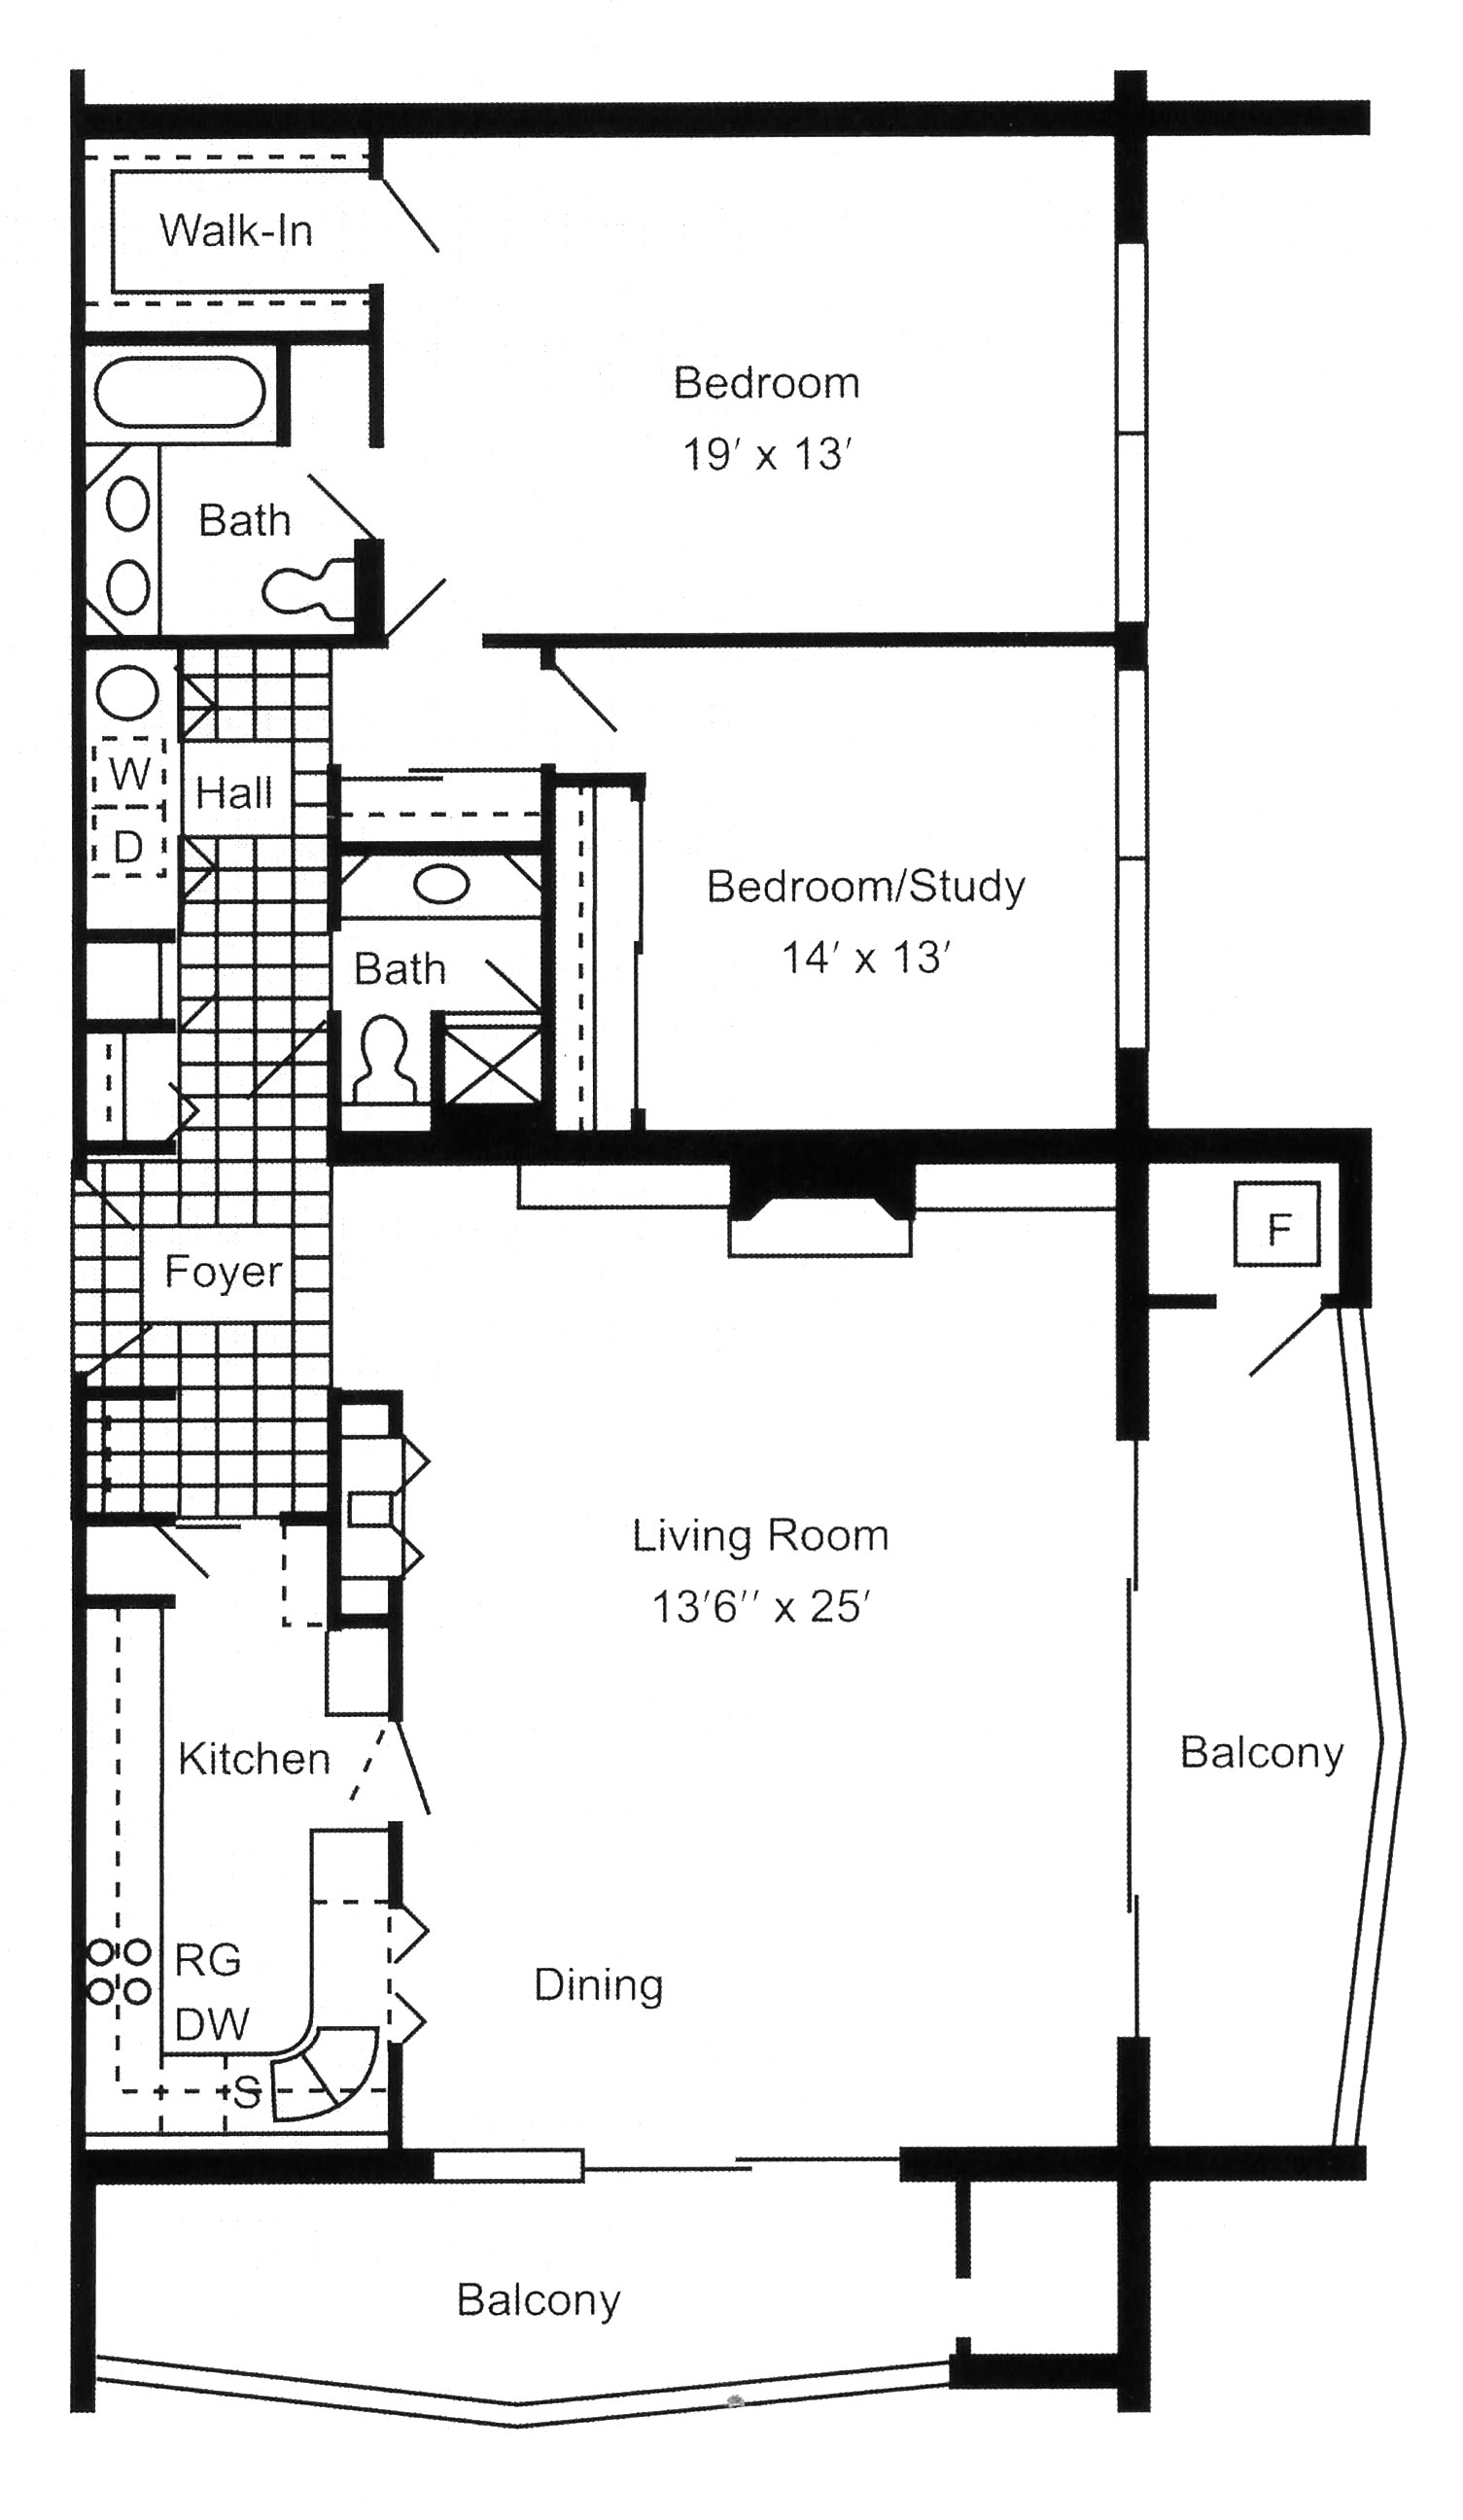 Luxury apartments in Erie, PA, South Shore Place, offers two bedroom, two bathroom 1,400 square foot corner apartments.